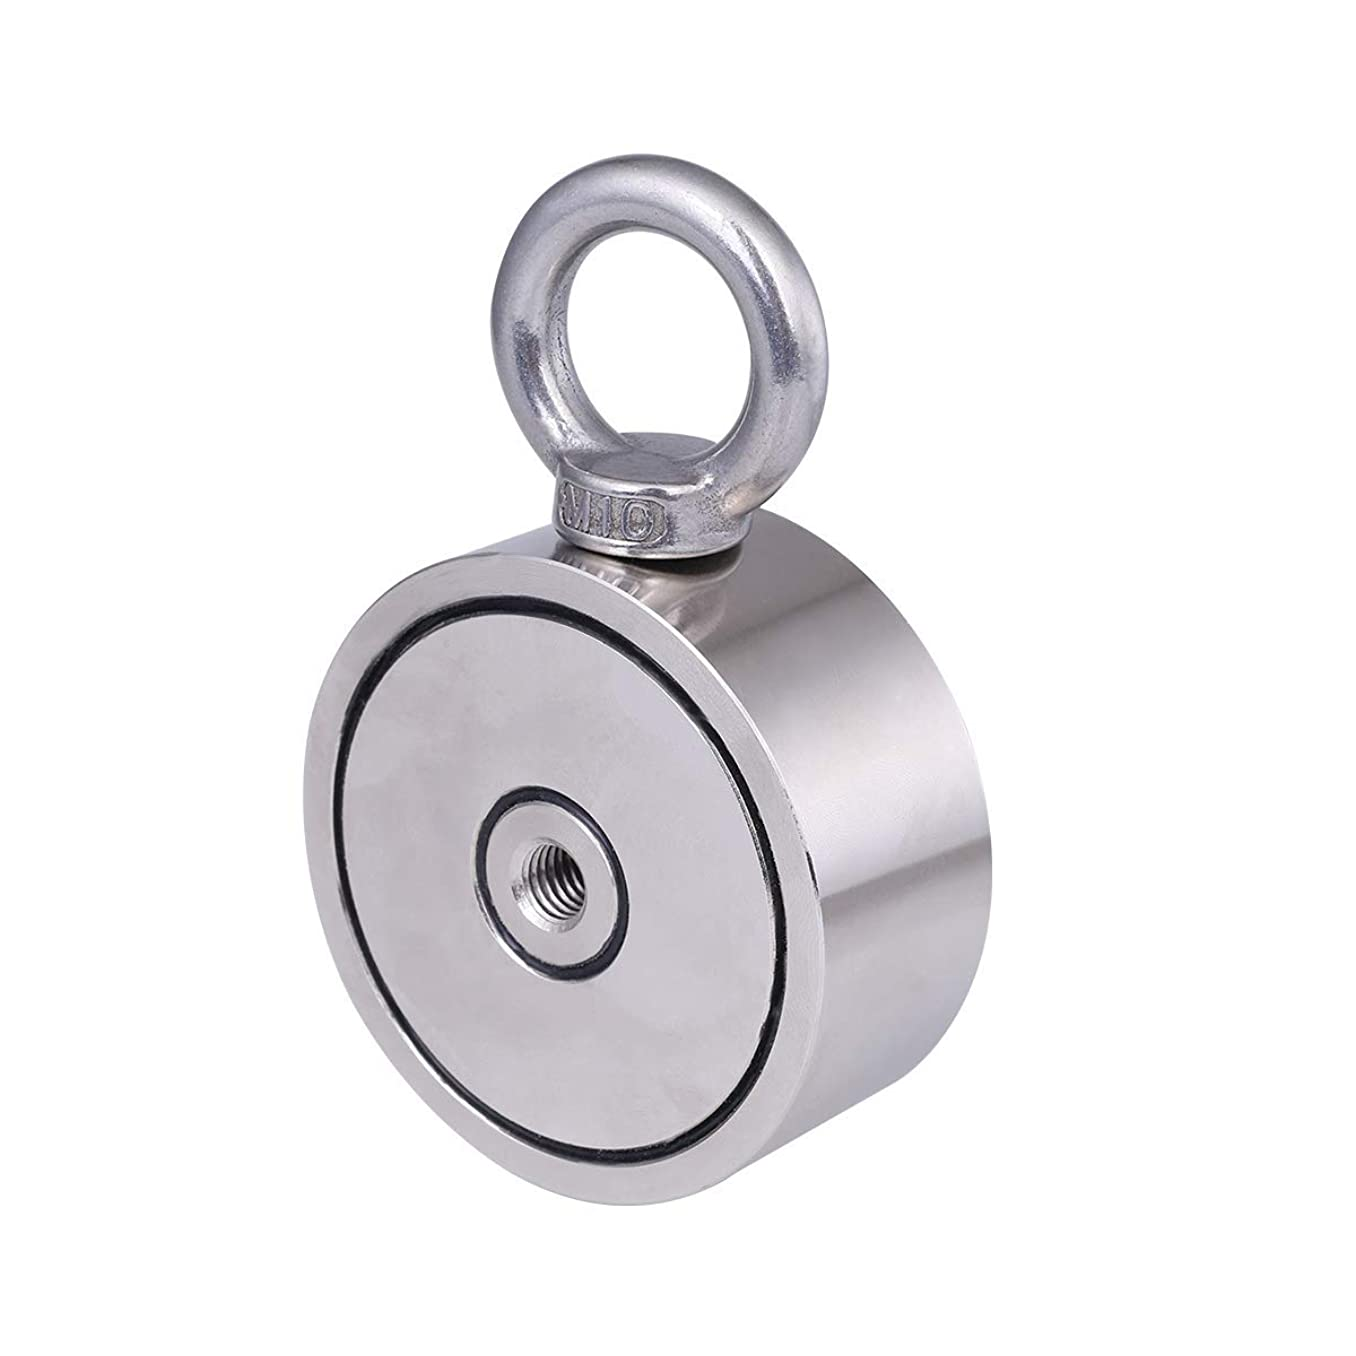 Neodymium Fishing Magnets Double-Sided Magnetic Round Neodymium Recovery Salvage Magnet with Eyebolt, Super Strong Pulling Force, 2.95